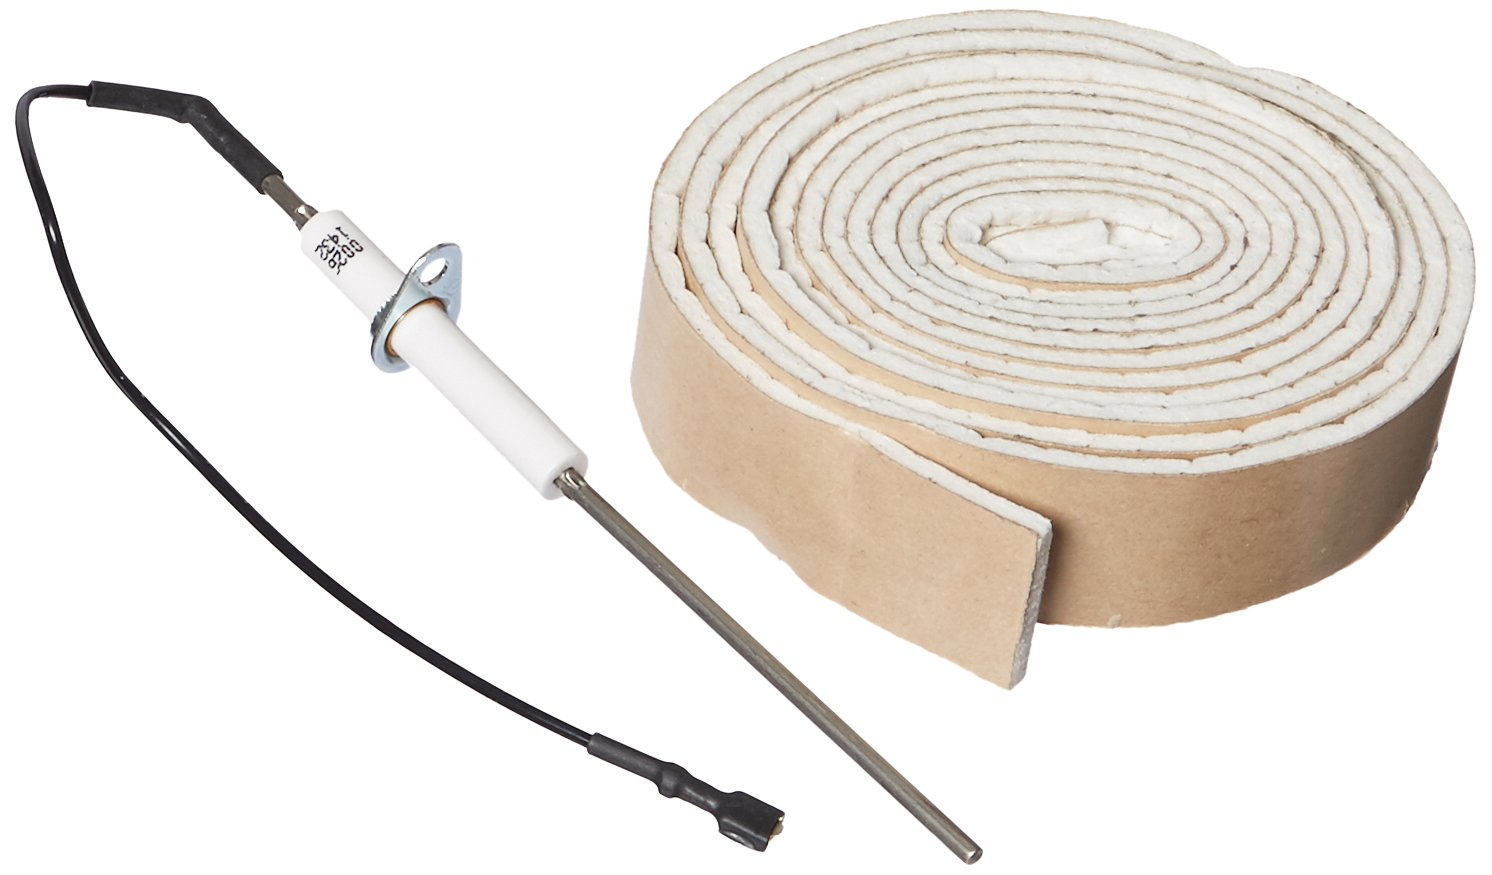 Zodiac R0458600 Flame Sensor Rod Replacement for Zodiac Jandy LXi Low NOx Pool and Spa Heaters by Zodiac